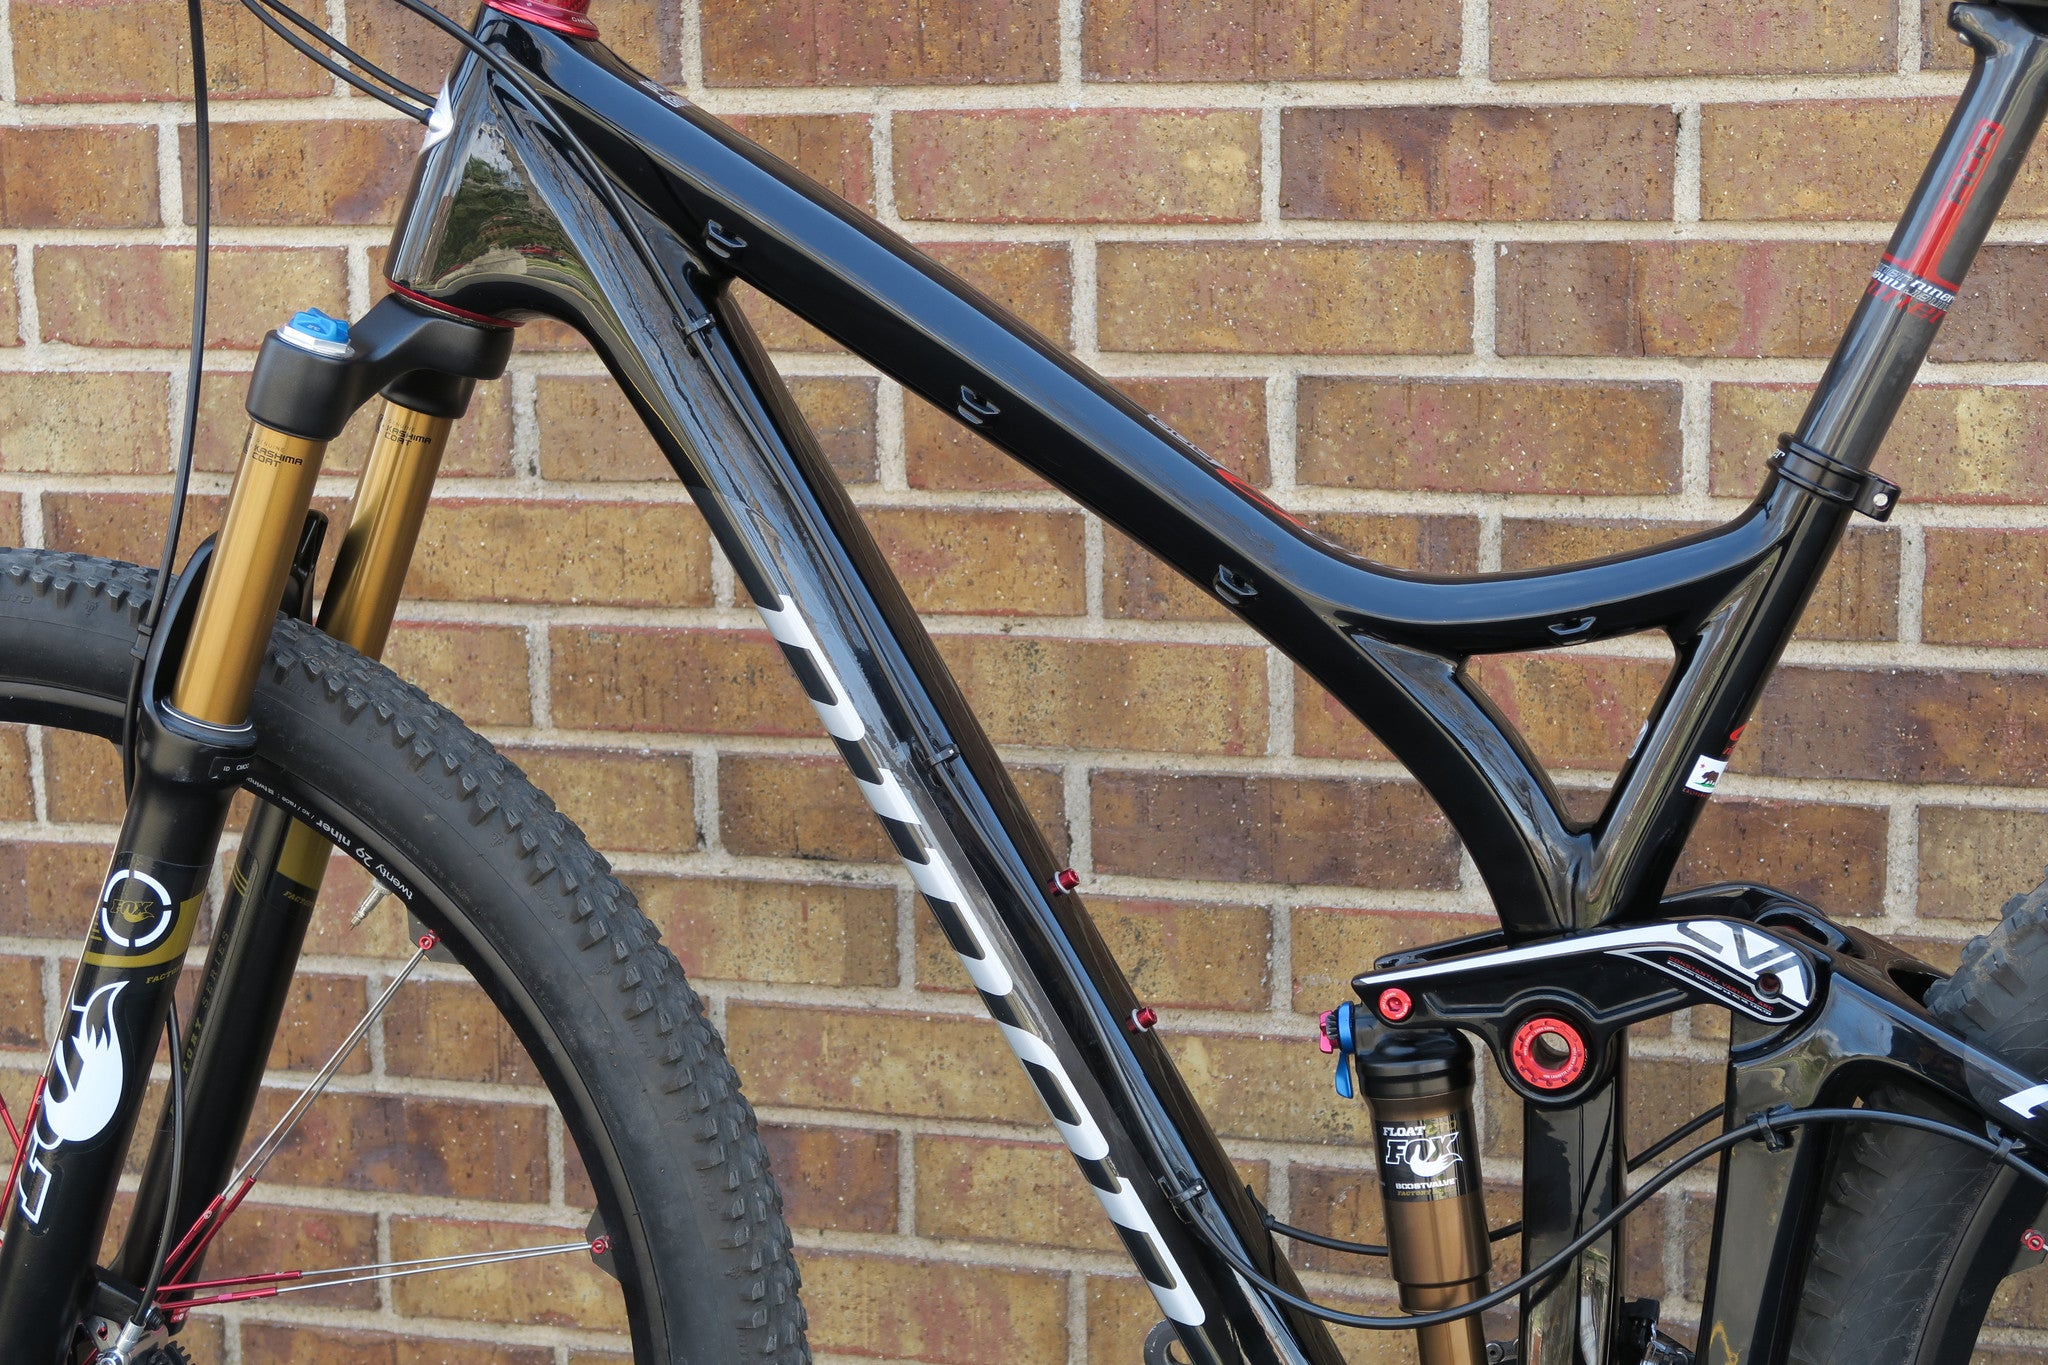 2014 NINER RIP 9 RDO CARBON 5-STAR XTR BUILD 29